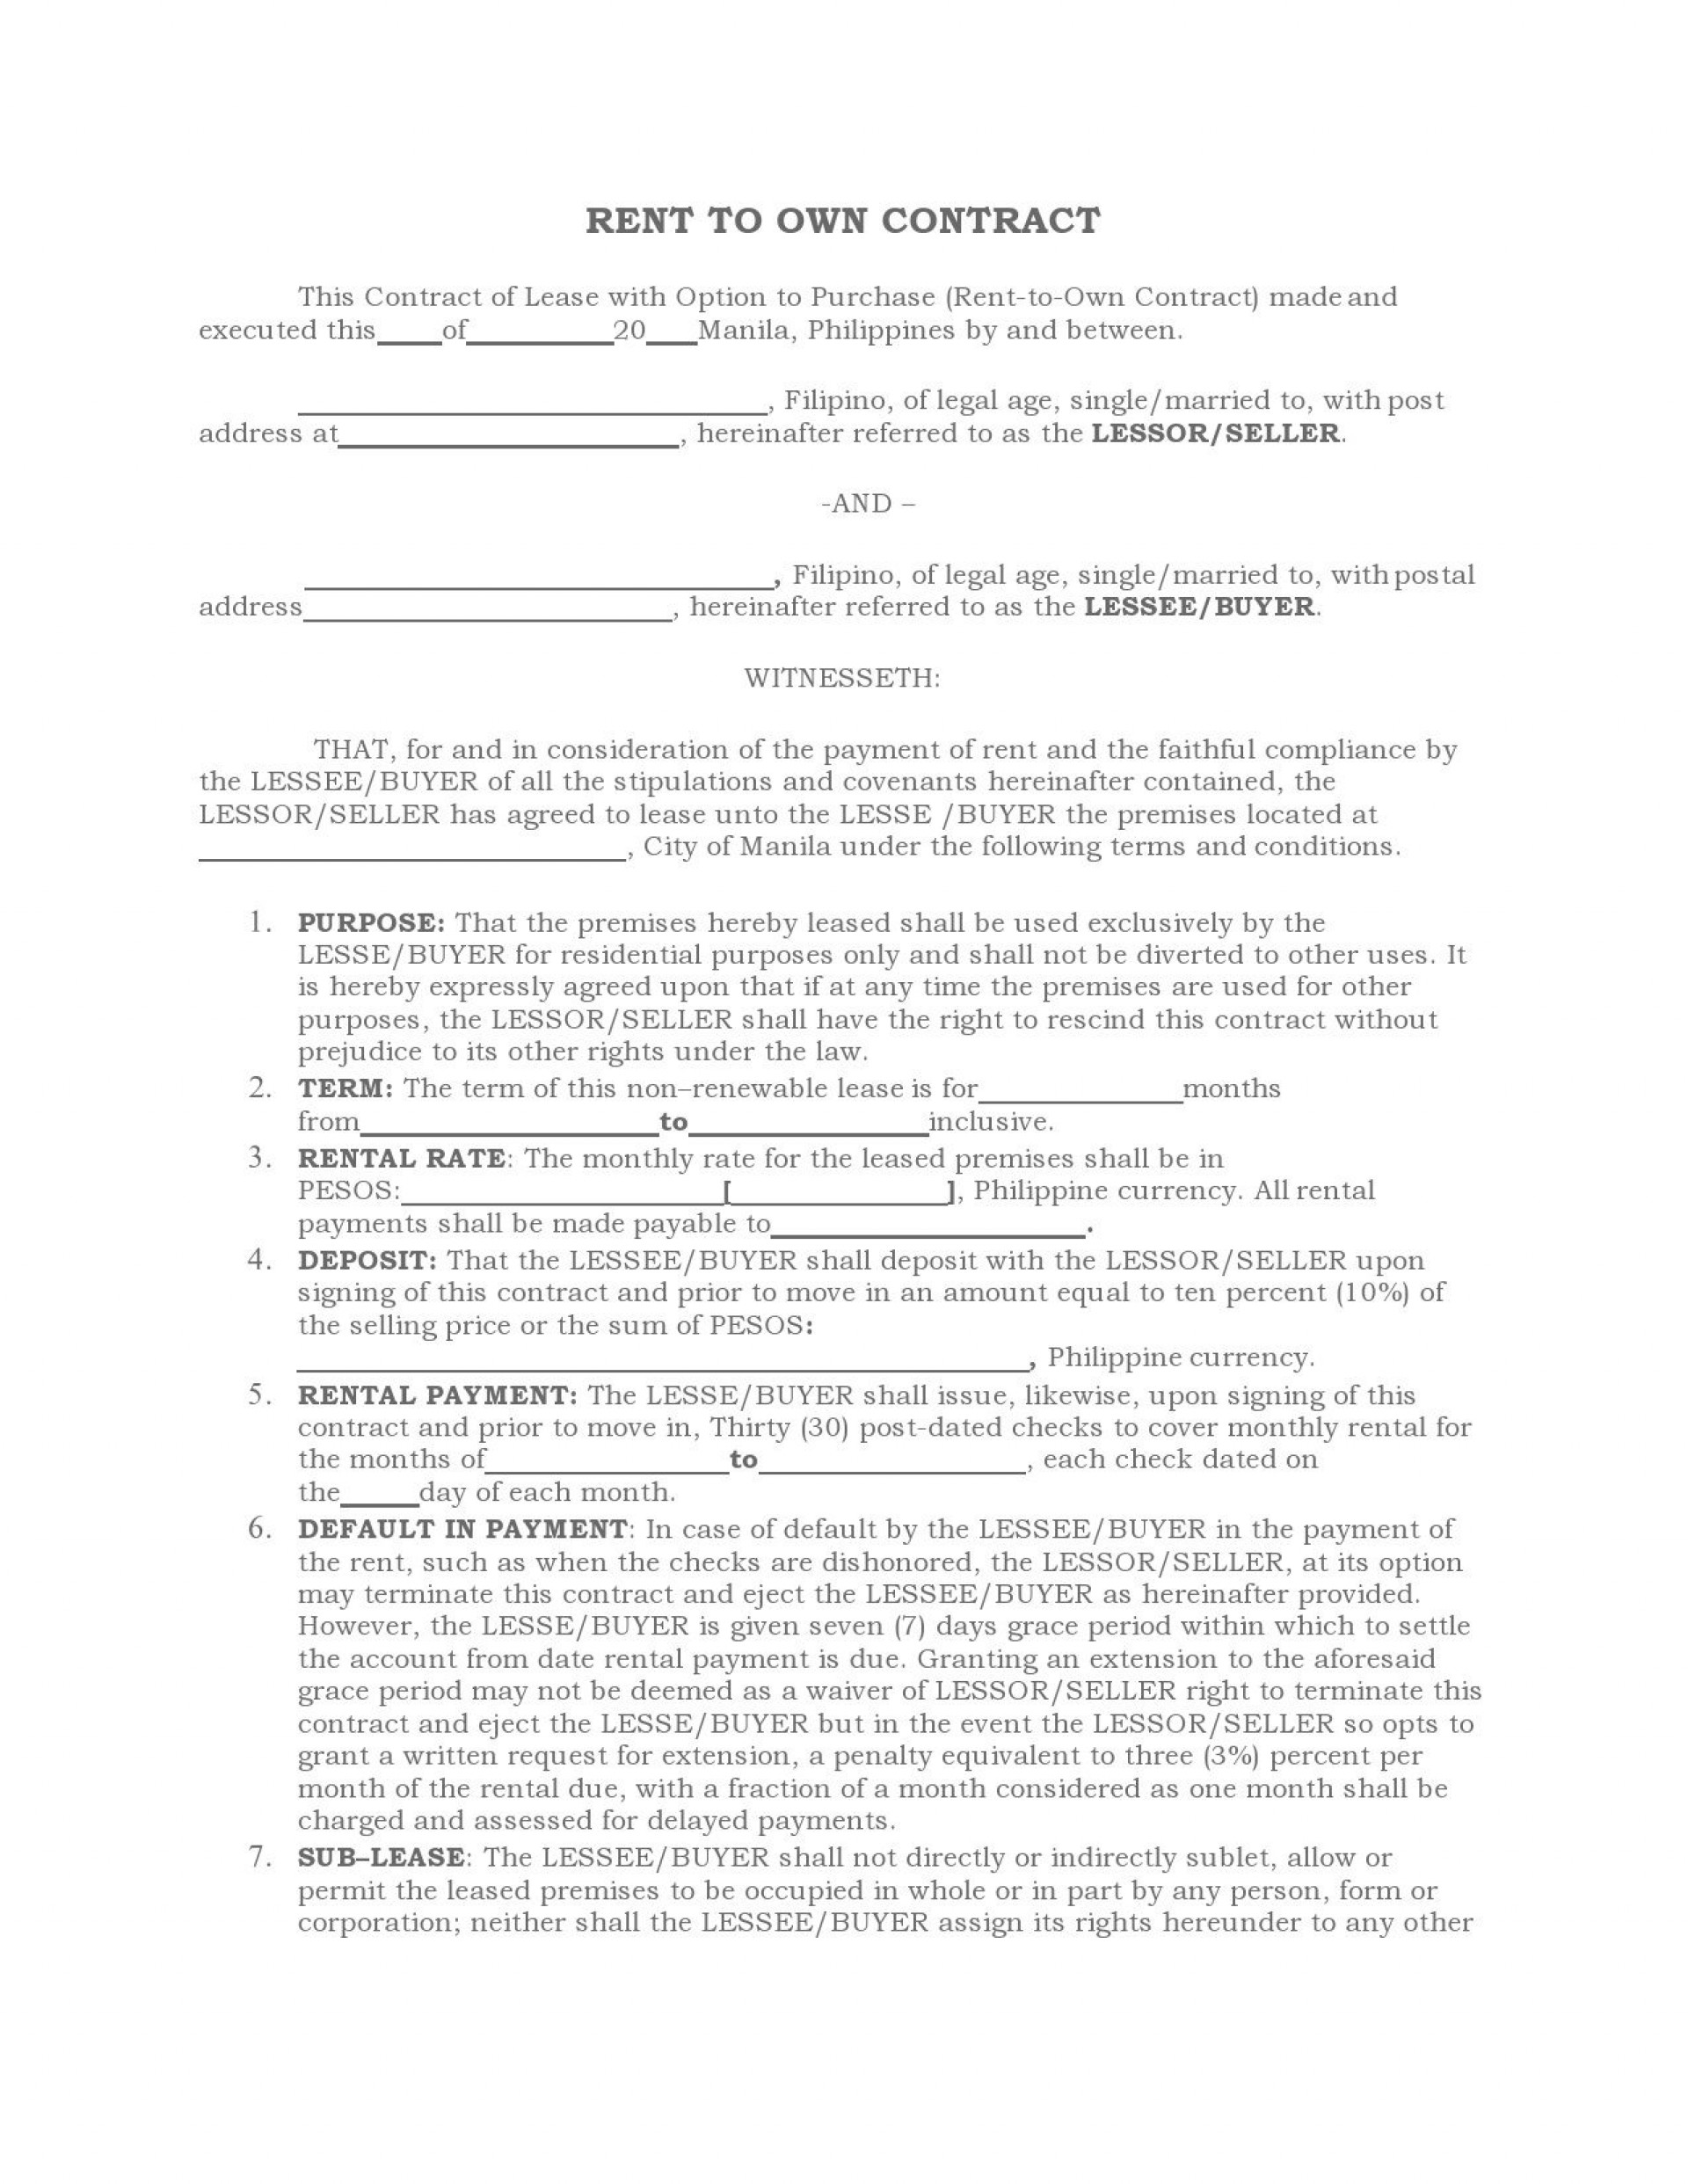 006 Excellent Rent To Own Contract Template Philippine Image  Philippines Sample1920